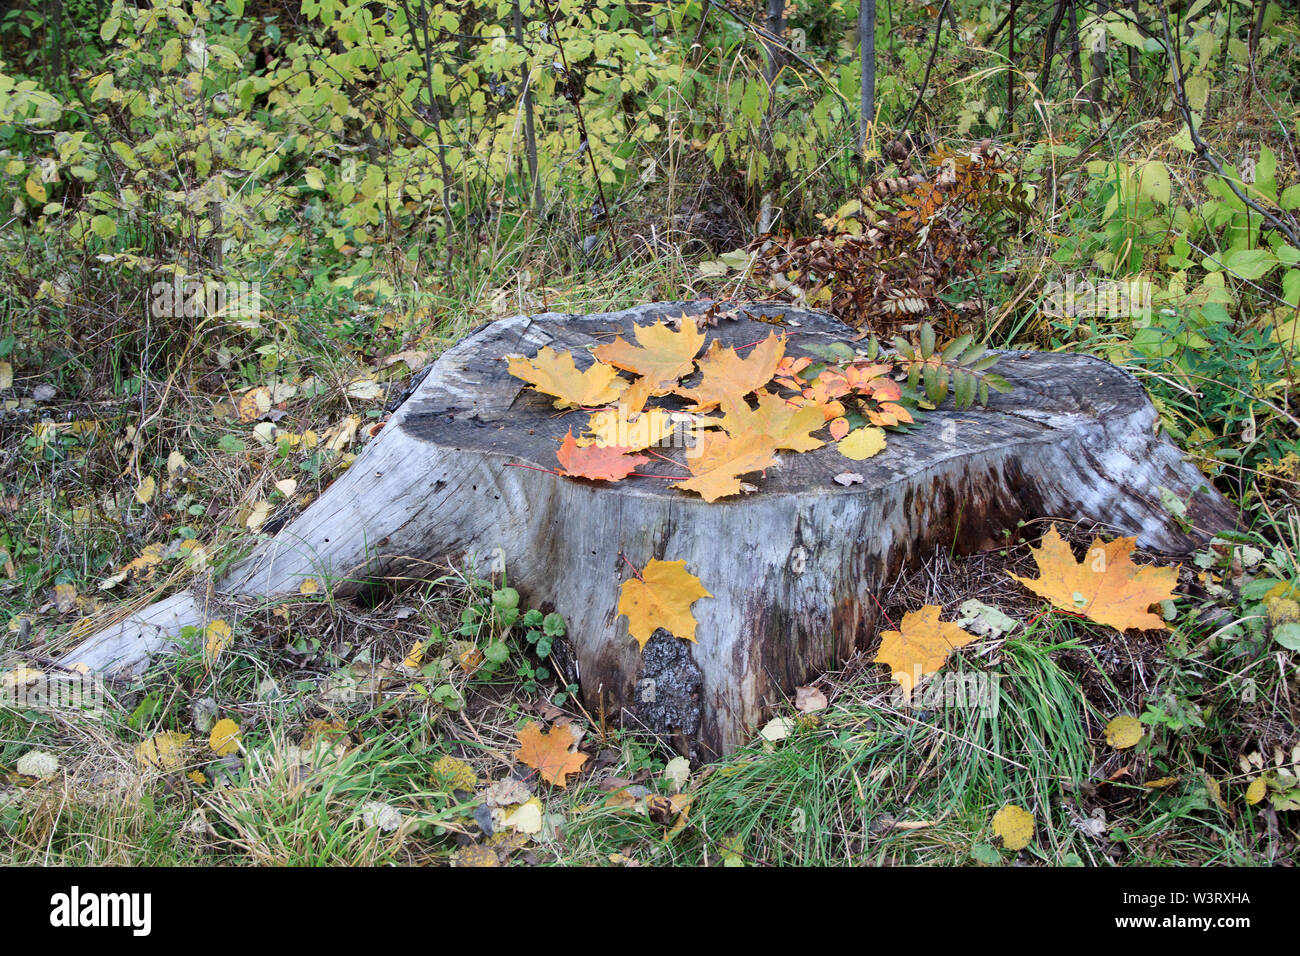 Beautiful yellow and red autumn leaves are lying on the wooden stump. Seasons of the year. Live nature. - Stock Image